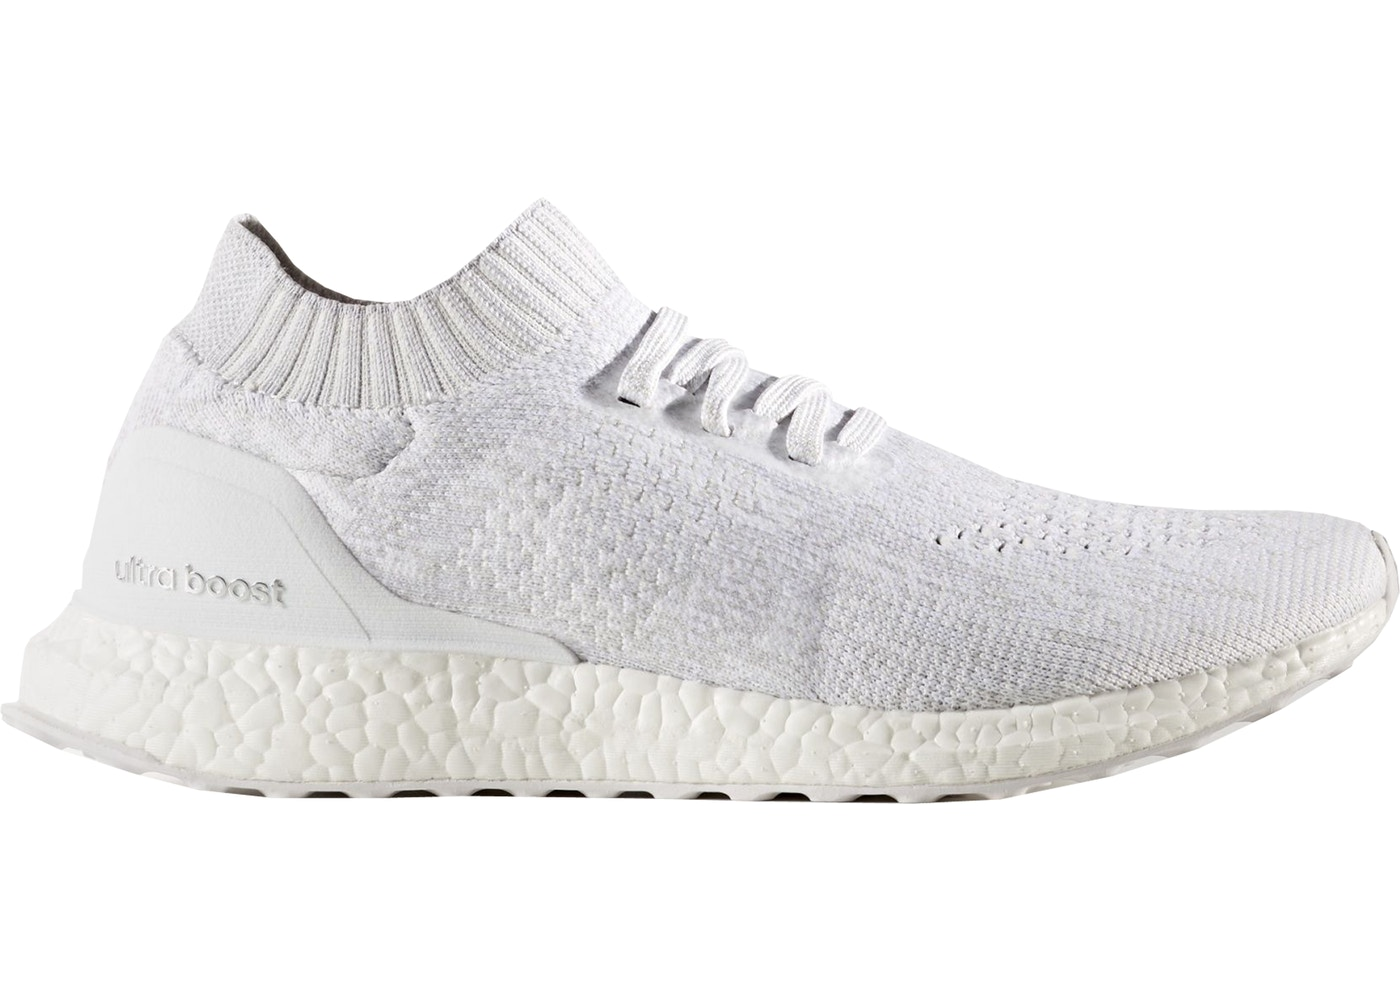 adidas Ultraboost Uncaged - BY2549 - Size 11.5 - VwlqOSdX6